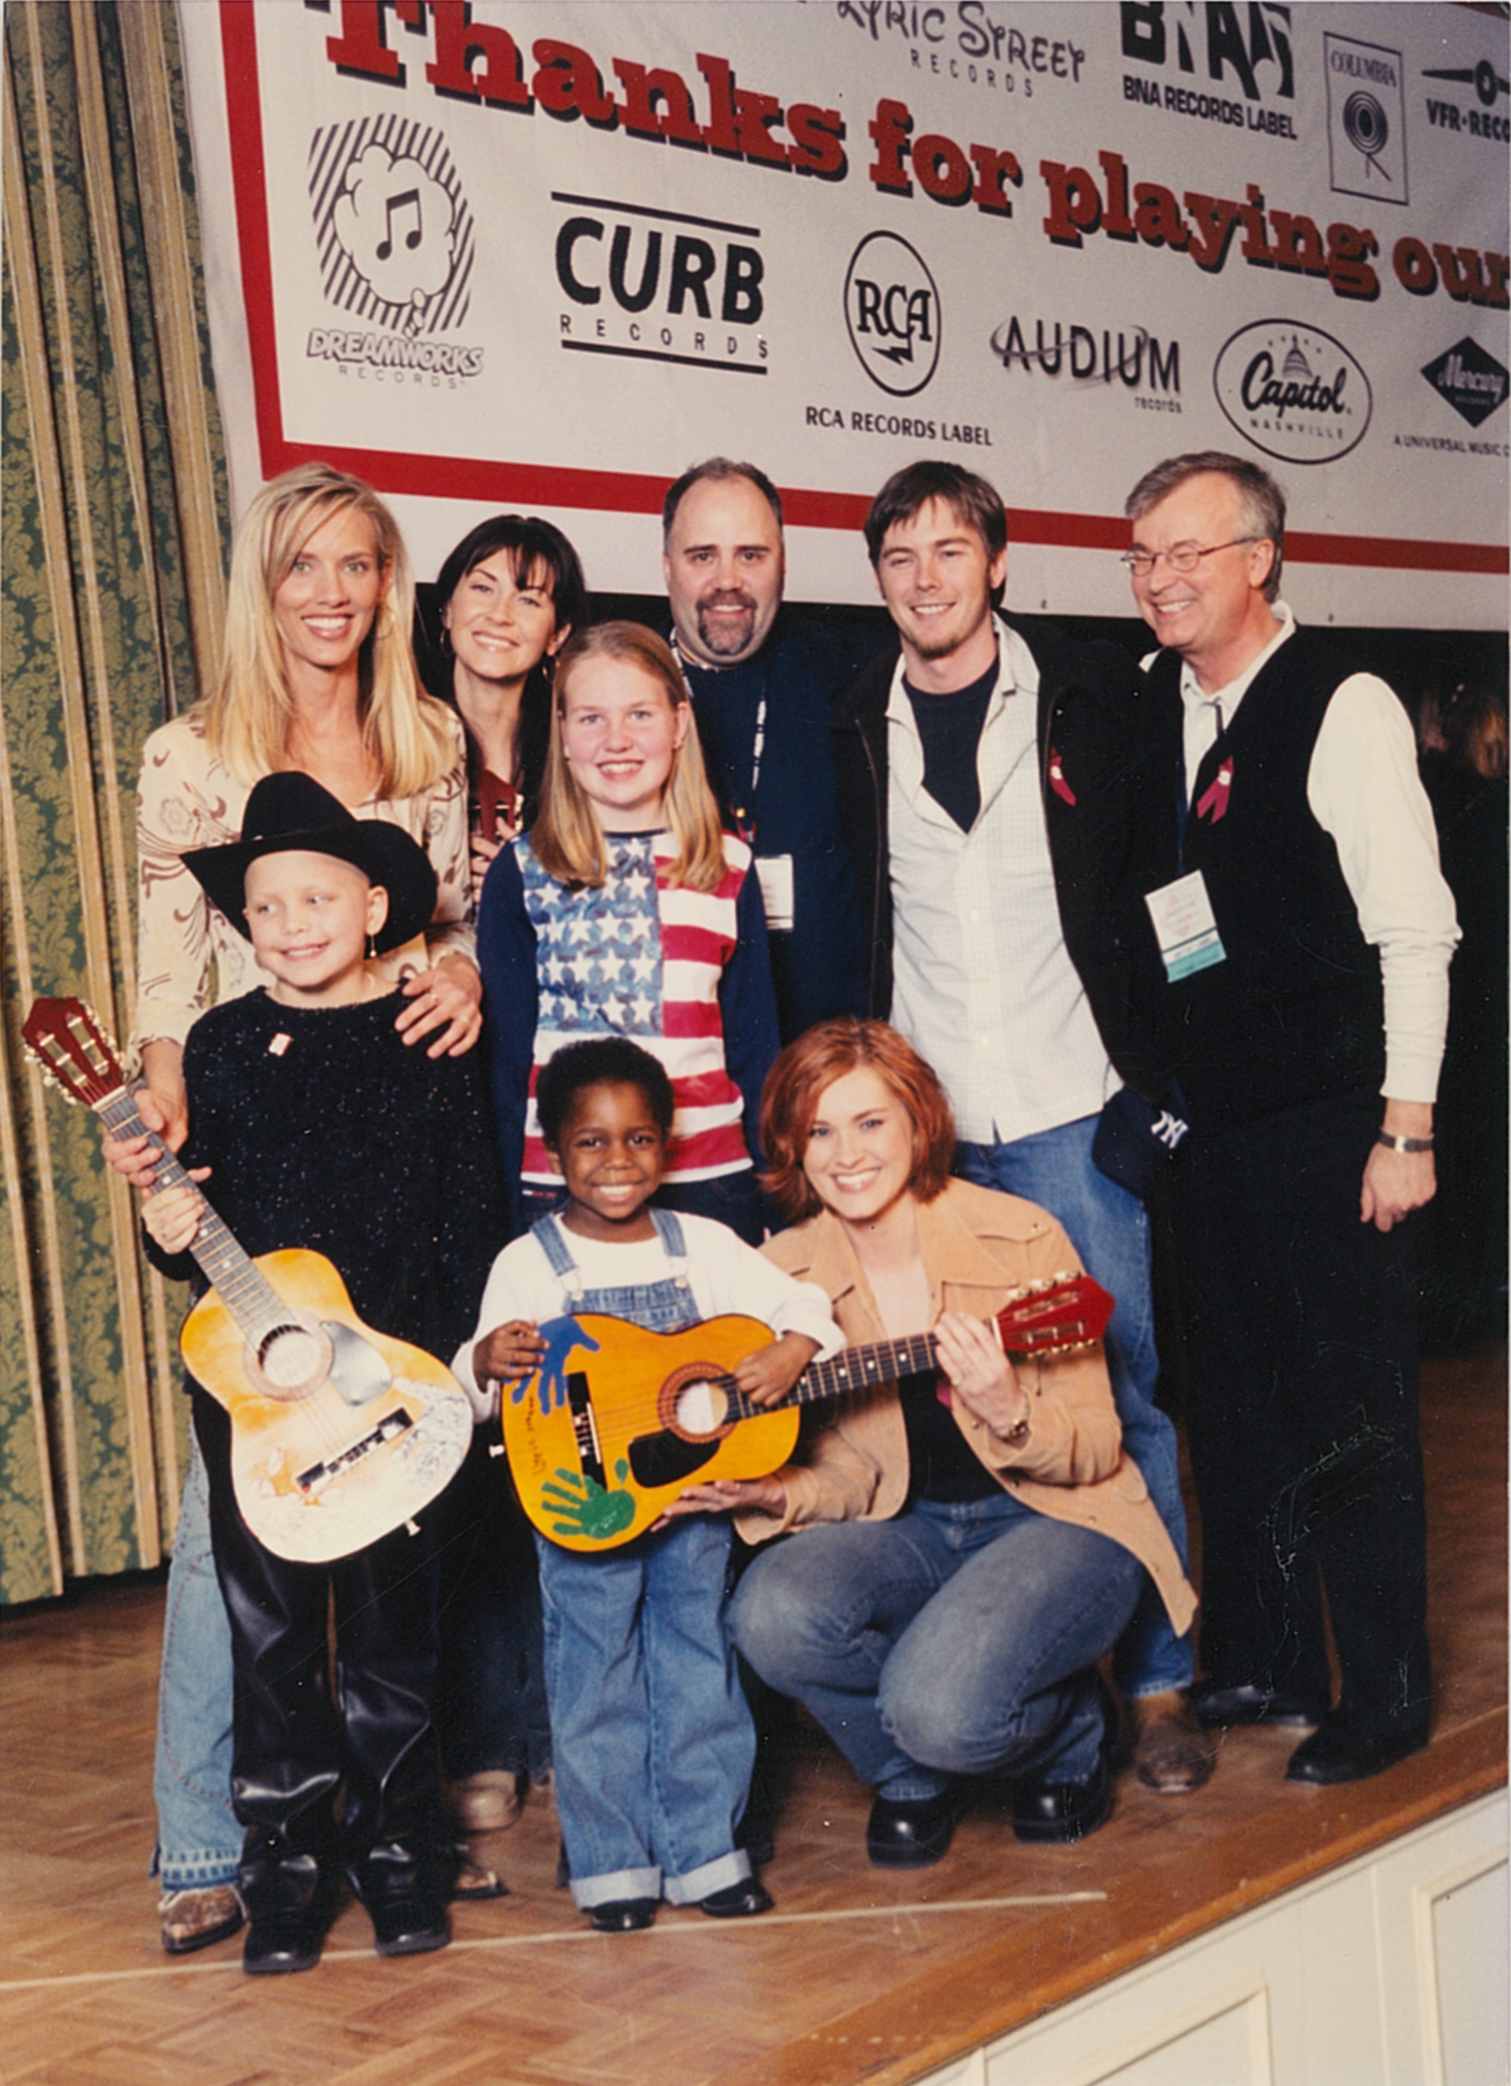 In Memphis at the annual St. Jude Children's Country Cares Seminar with SheDaisy, Brian McComas and patients of the hospital plus Lyric Street's Kevin Herring and Dale Turner